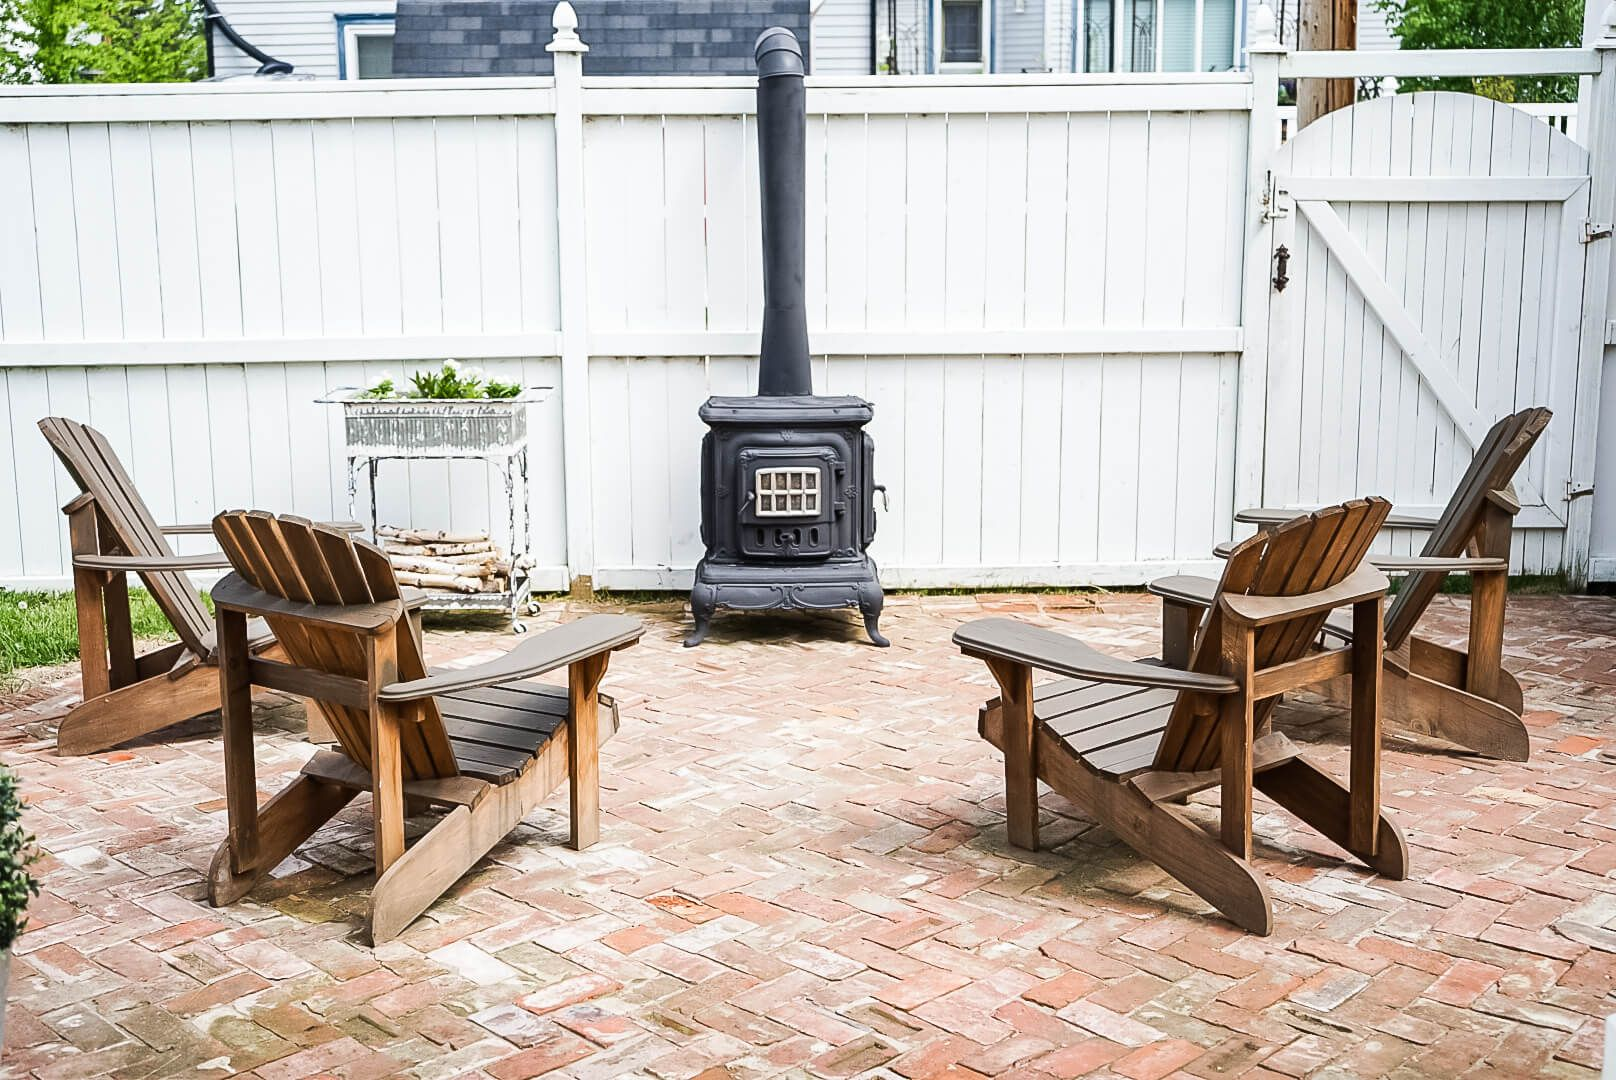 Outdoor Wood Burning Fireplace 6 Step Diy Guide Using Rustoleum Spray Paint Vintage Society Co Outdoor Wood Burning Fireplace Outdoor Wood Wood Burning Fireplace